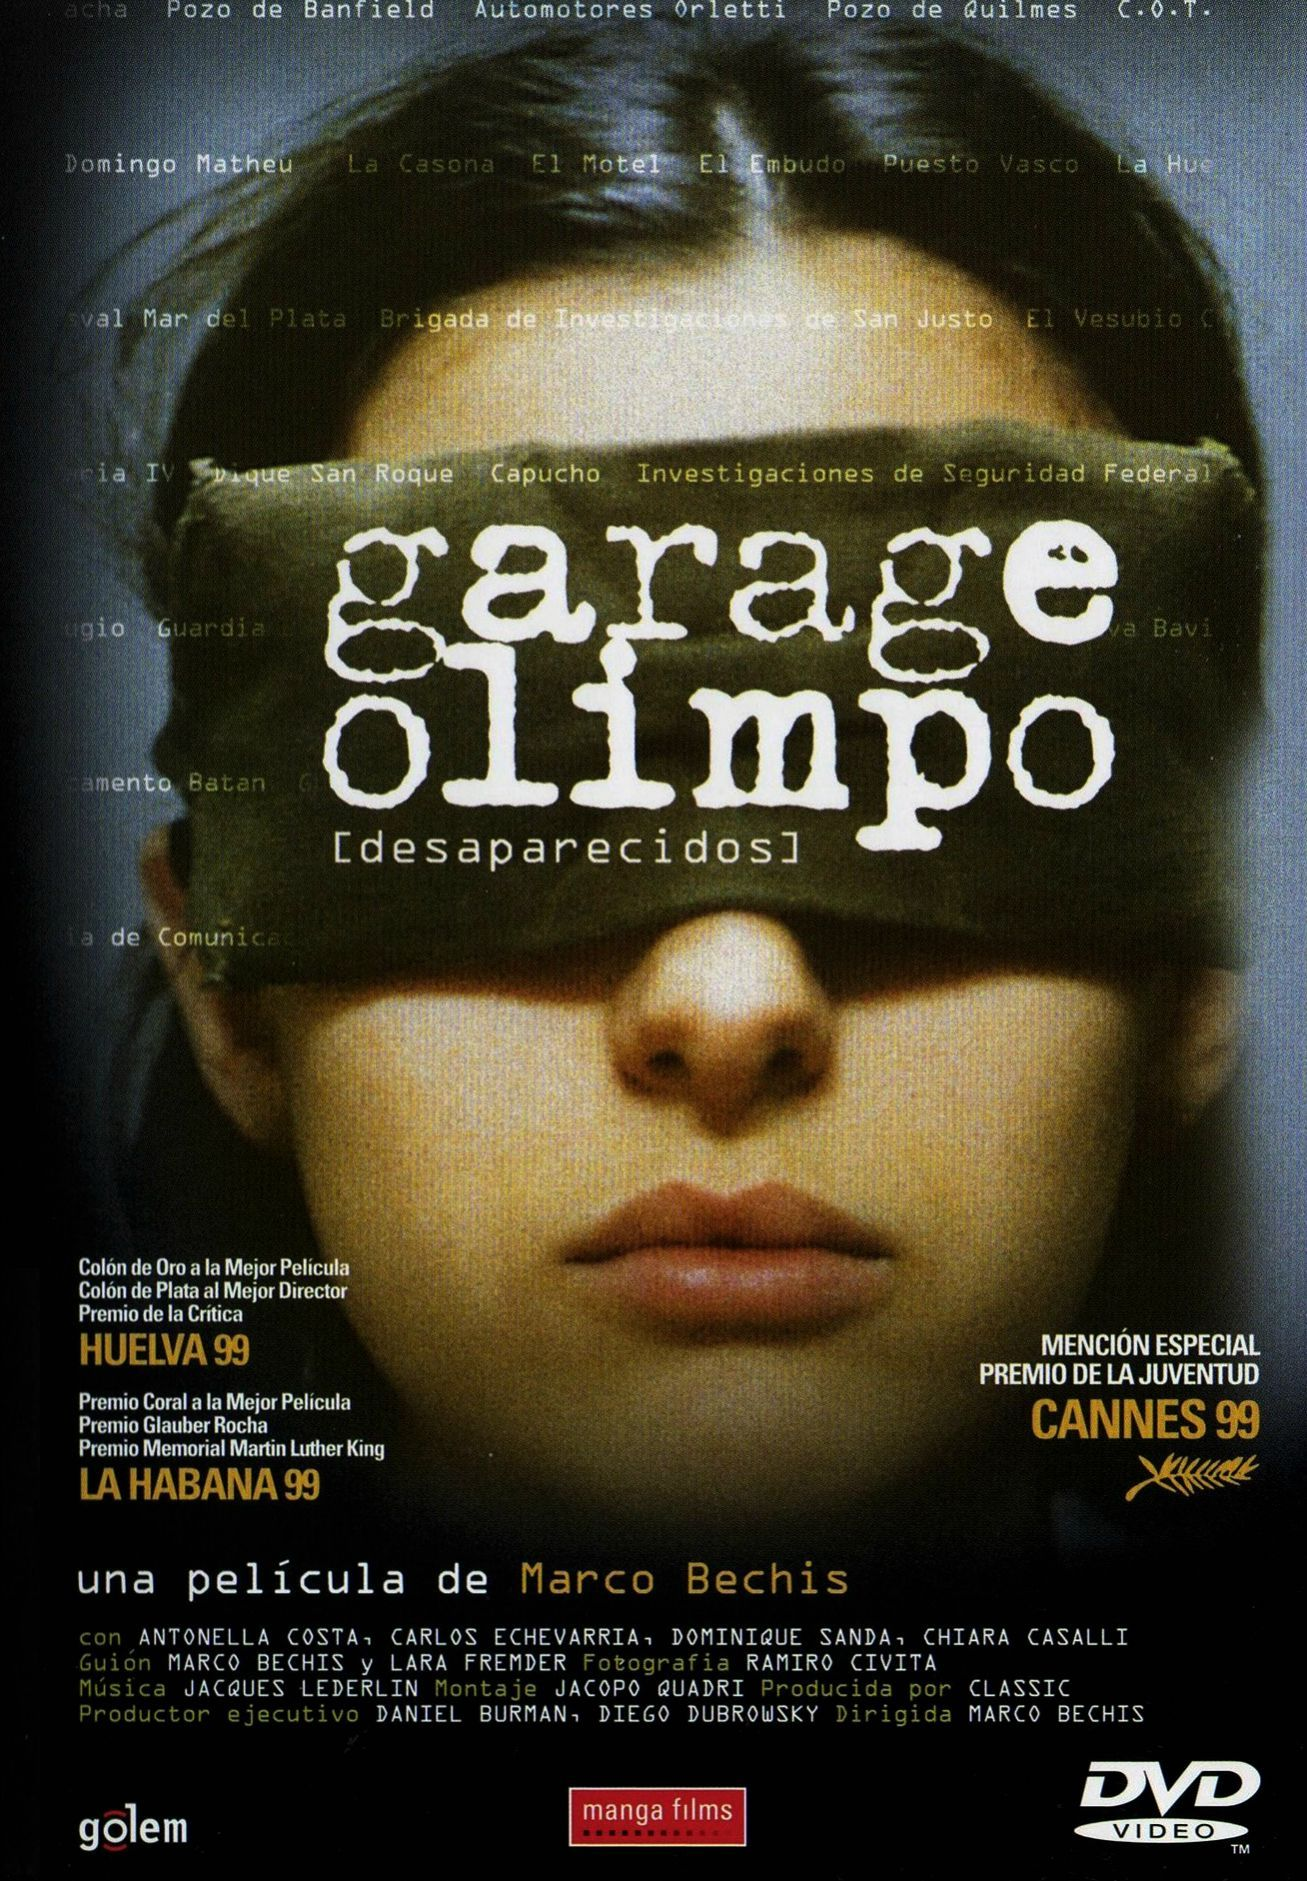 Garage Olimpo Full Movie Google Search Full Movies Online Free Streaming Movies Free Free Movies